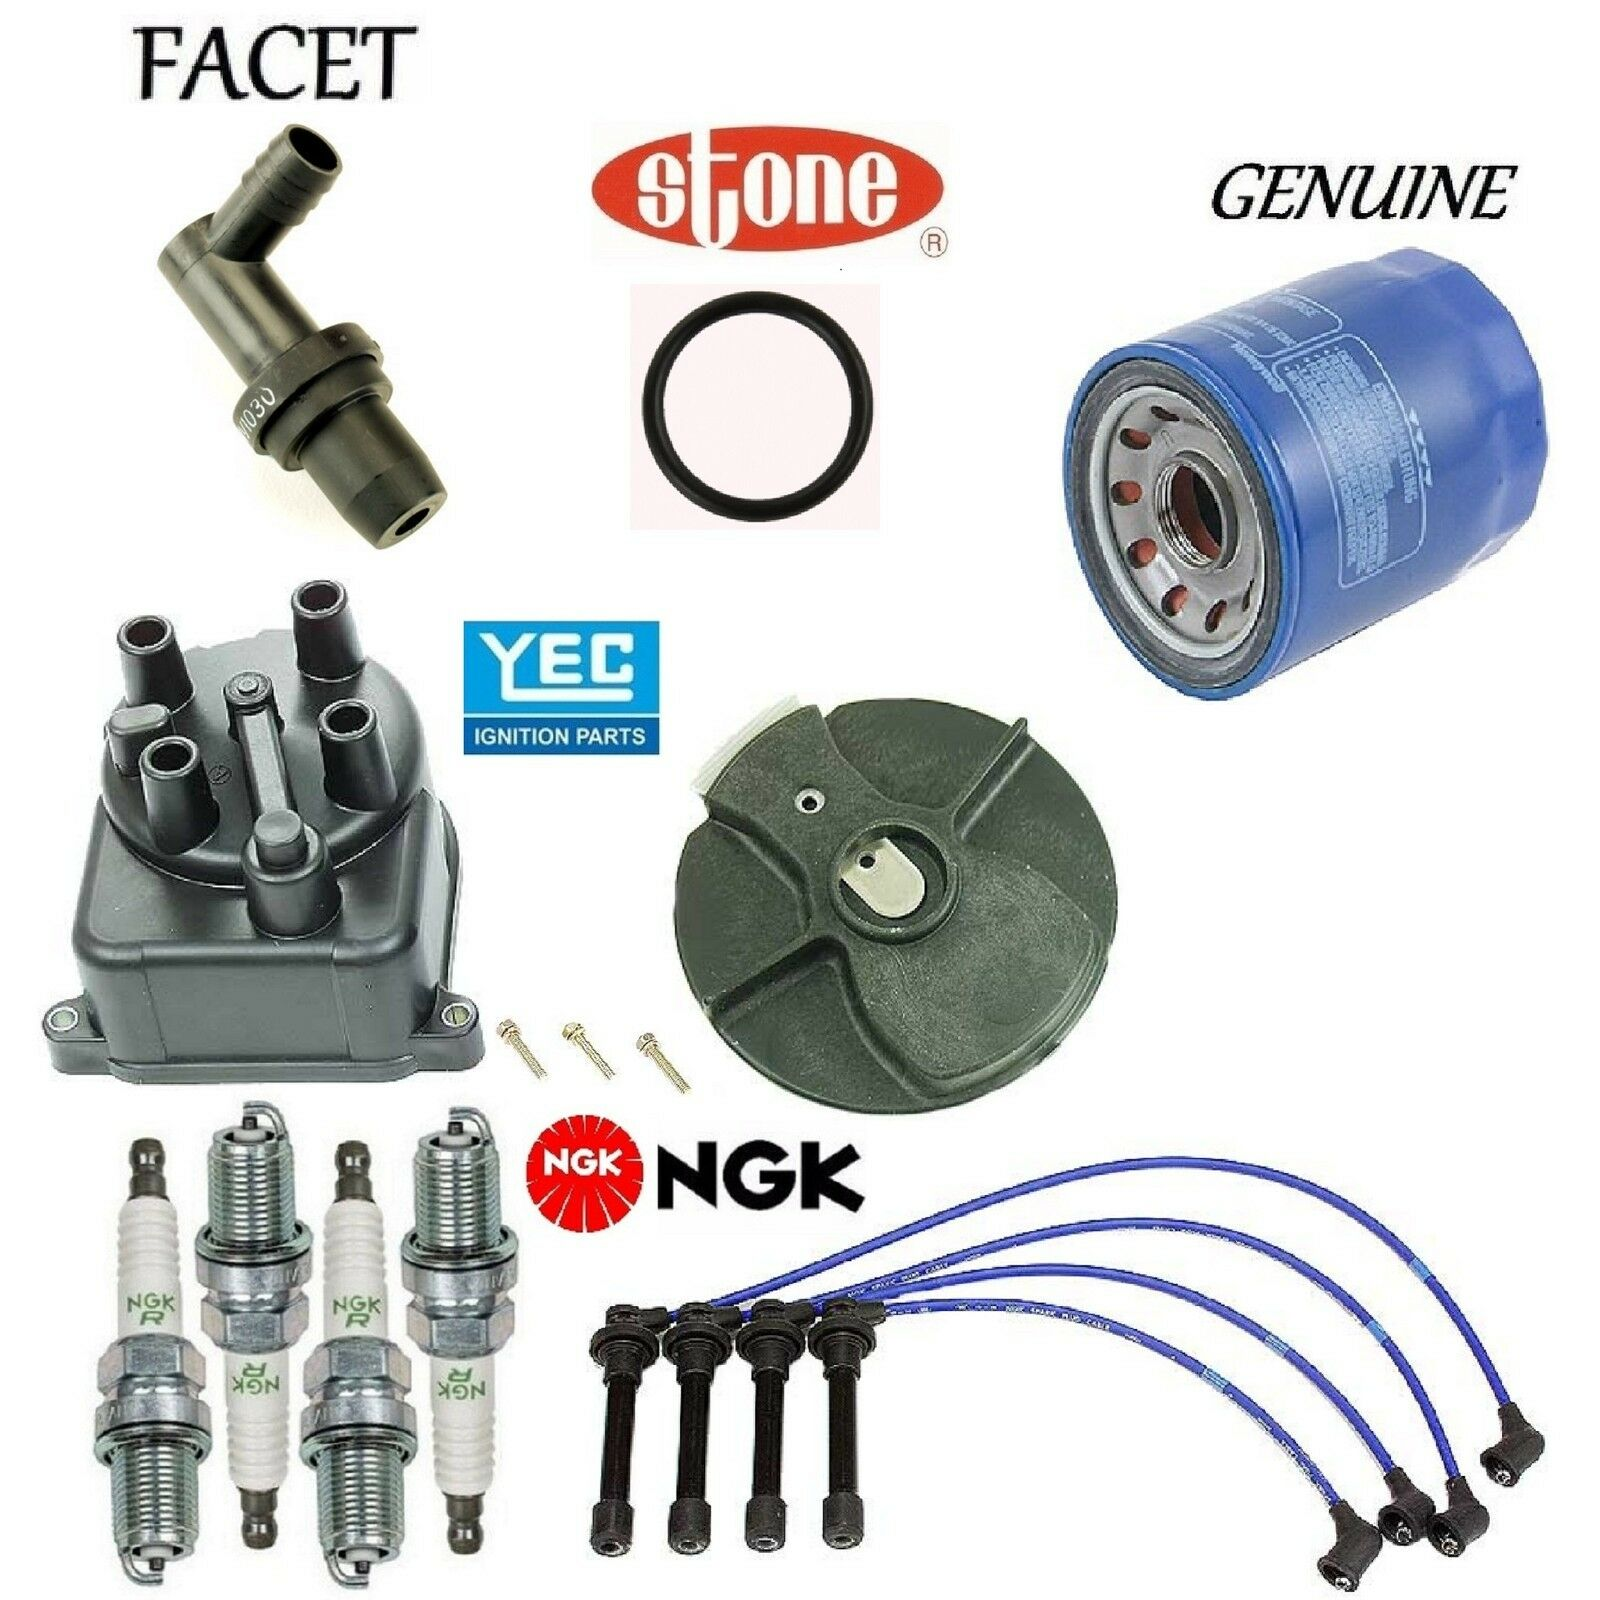 93 Honda Civic Del Sol Wiring Electrical Diagrams 1993 Harness Diagram Tune Up Kit Cap Rotor Wires Spark Plug Pcv For Convertible